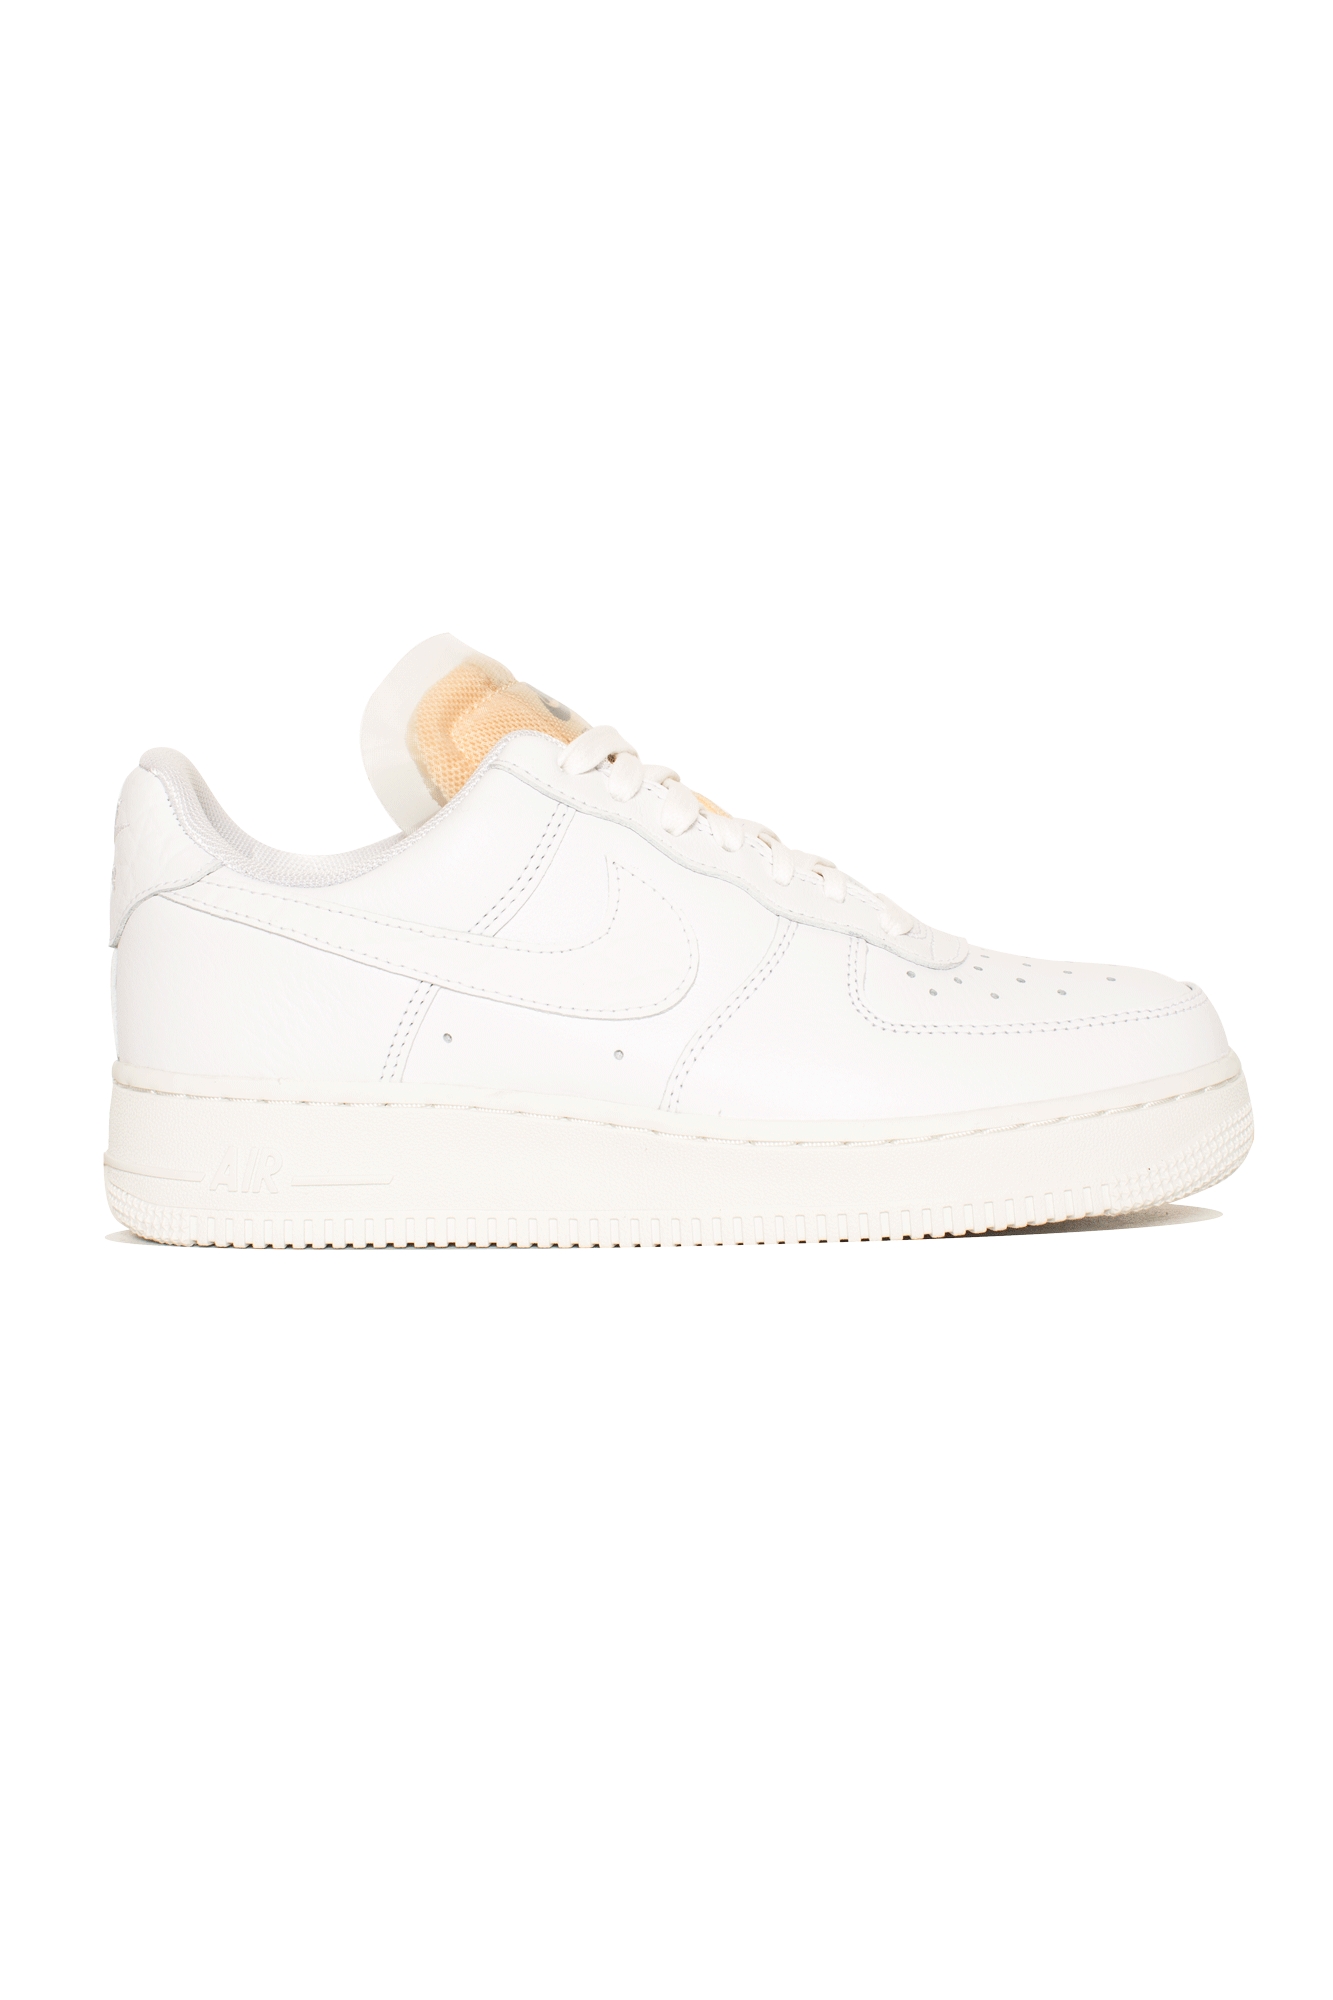 Nike Sneakers Wmns Air Force 1 '07 LX White CZ8101-#000#100#6 - One Block Down